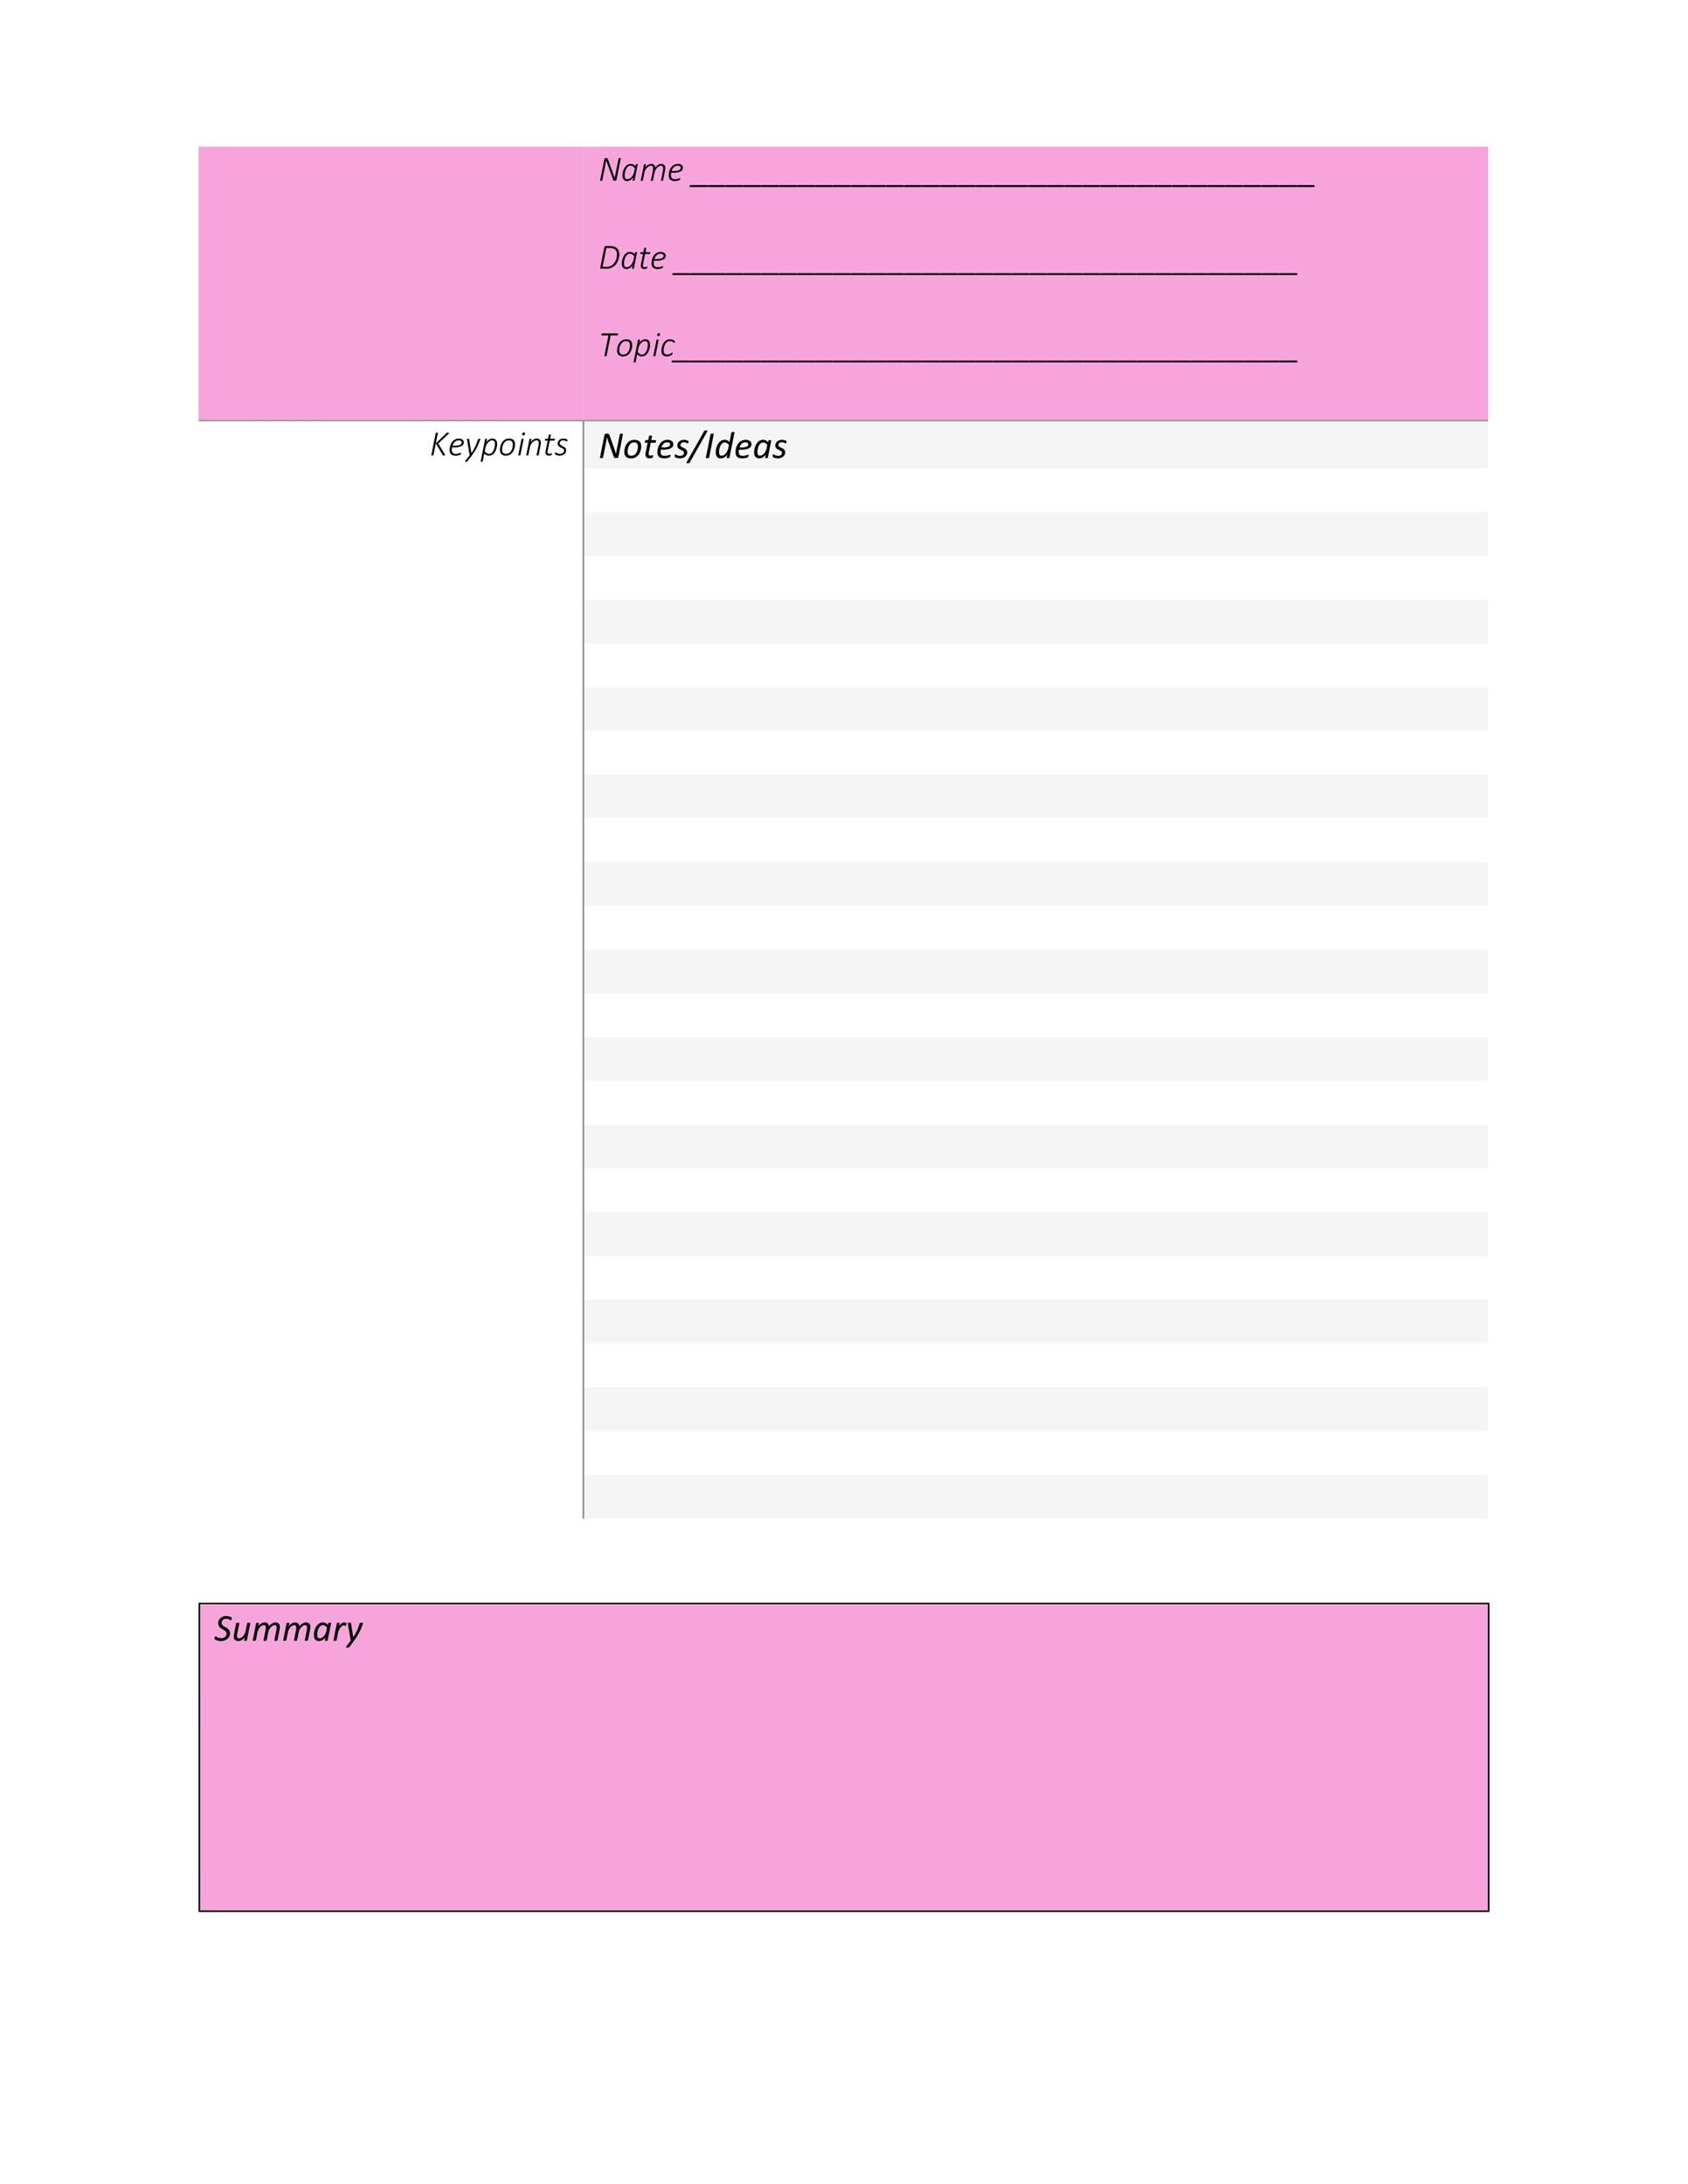 36 Cornell Notes Templates & Examples [Word, Pdf] - Template Lab